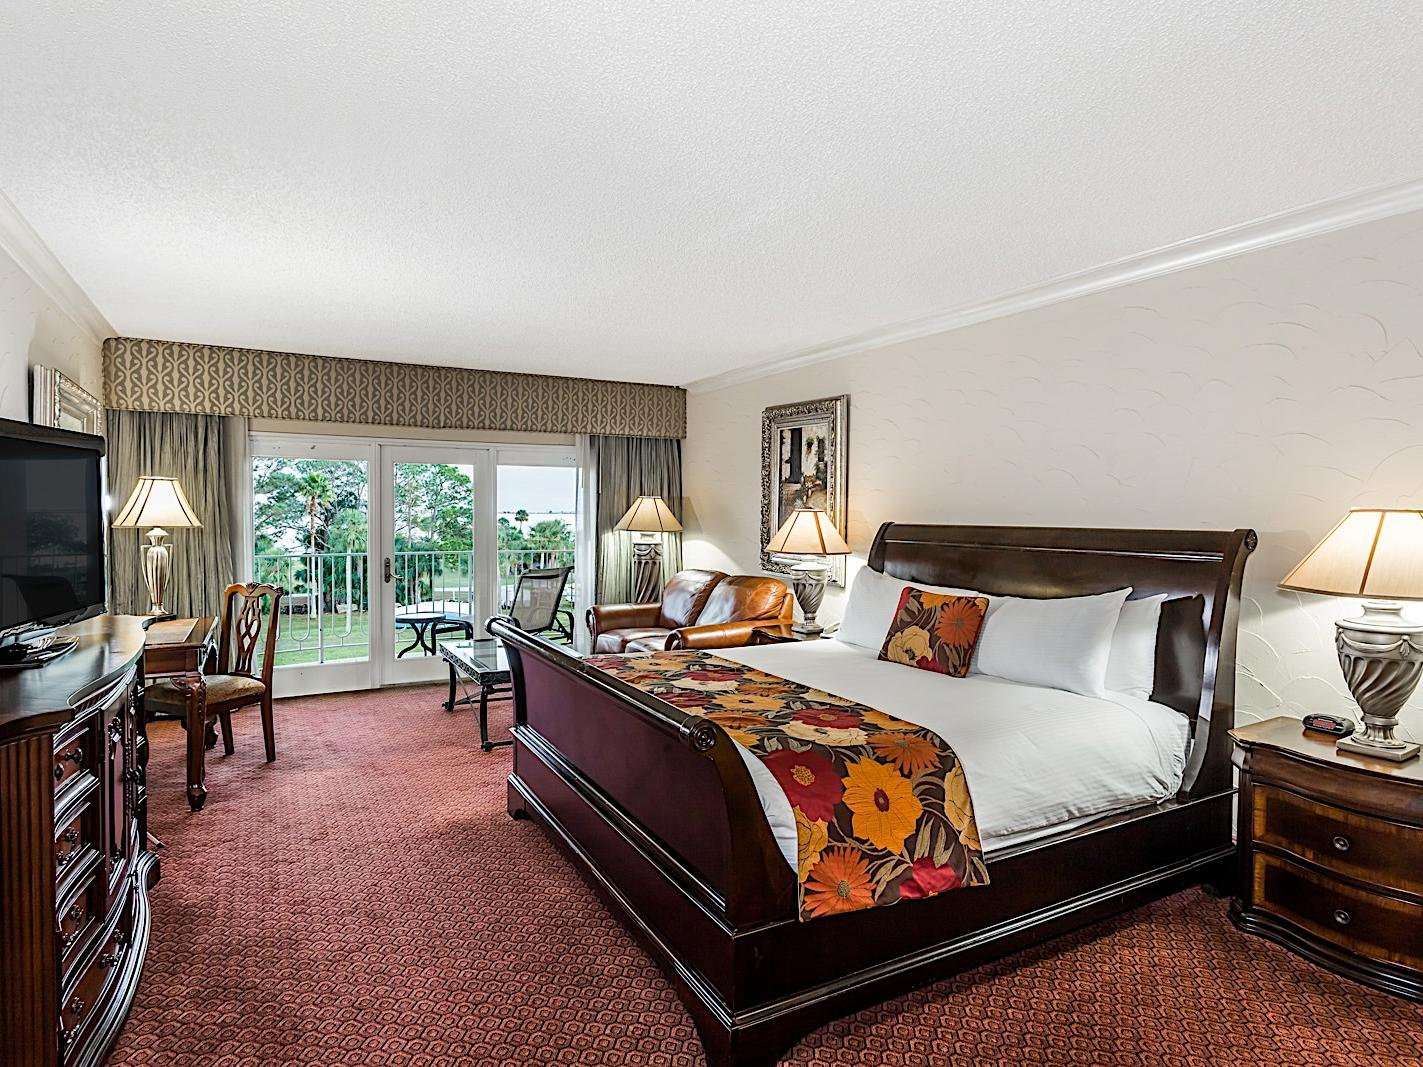 Elegant hotel suite with King bed and pool view.